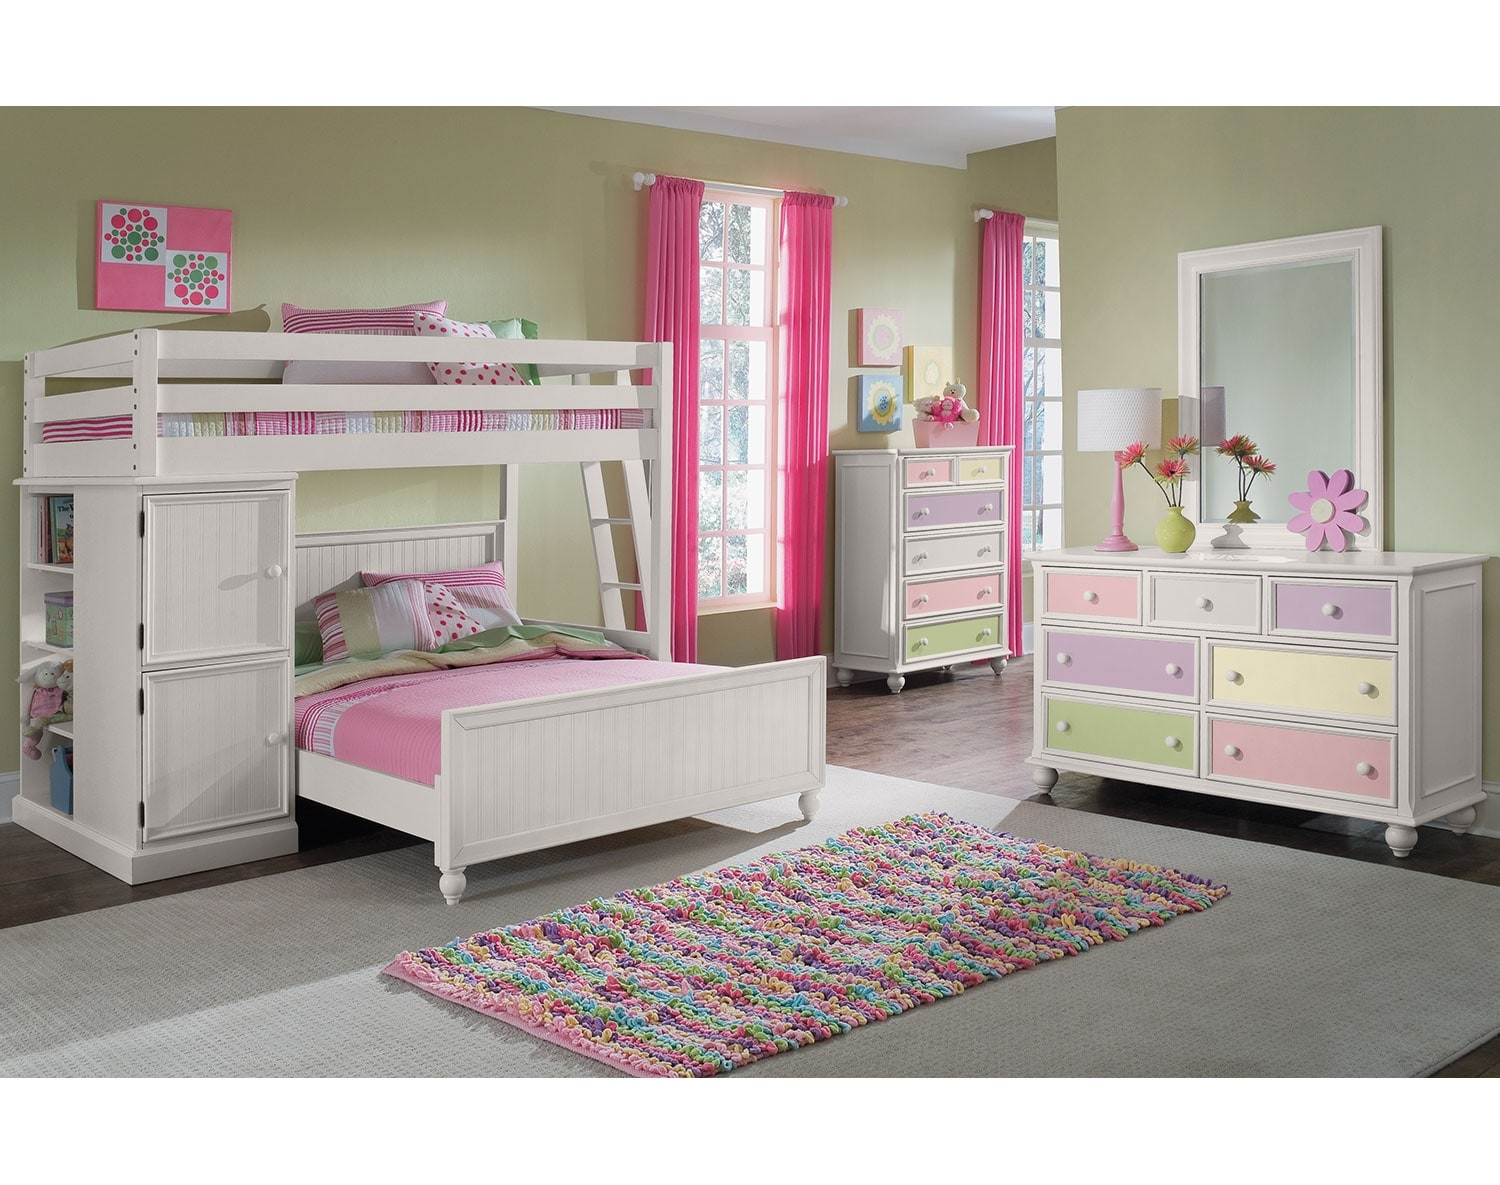 The Colorworks Loft White Collection. Kids  Tweens  and Teen Furniture   Value City Furniture and Mattresses